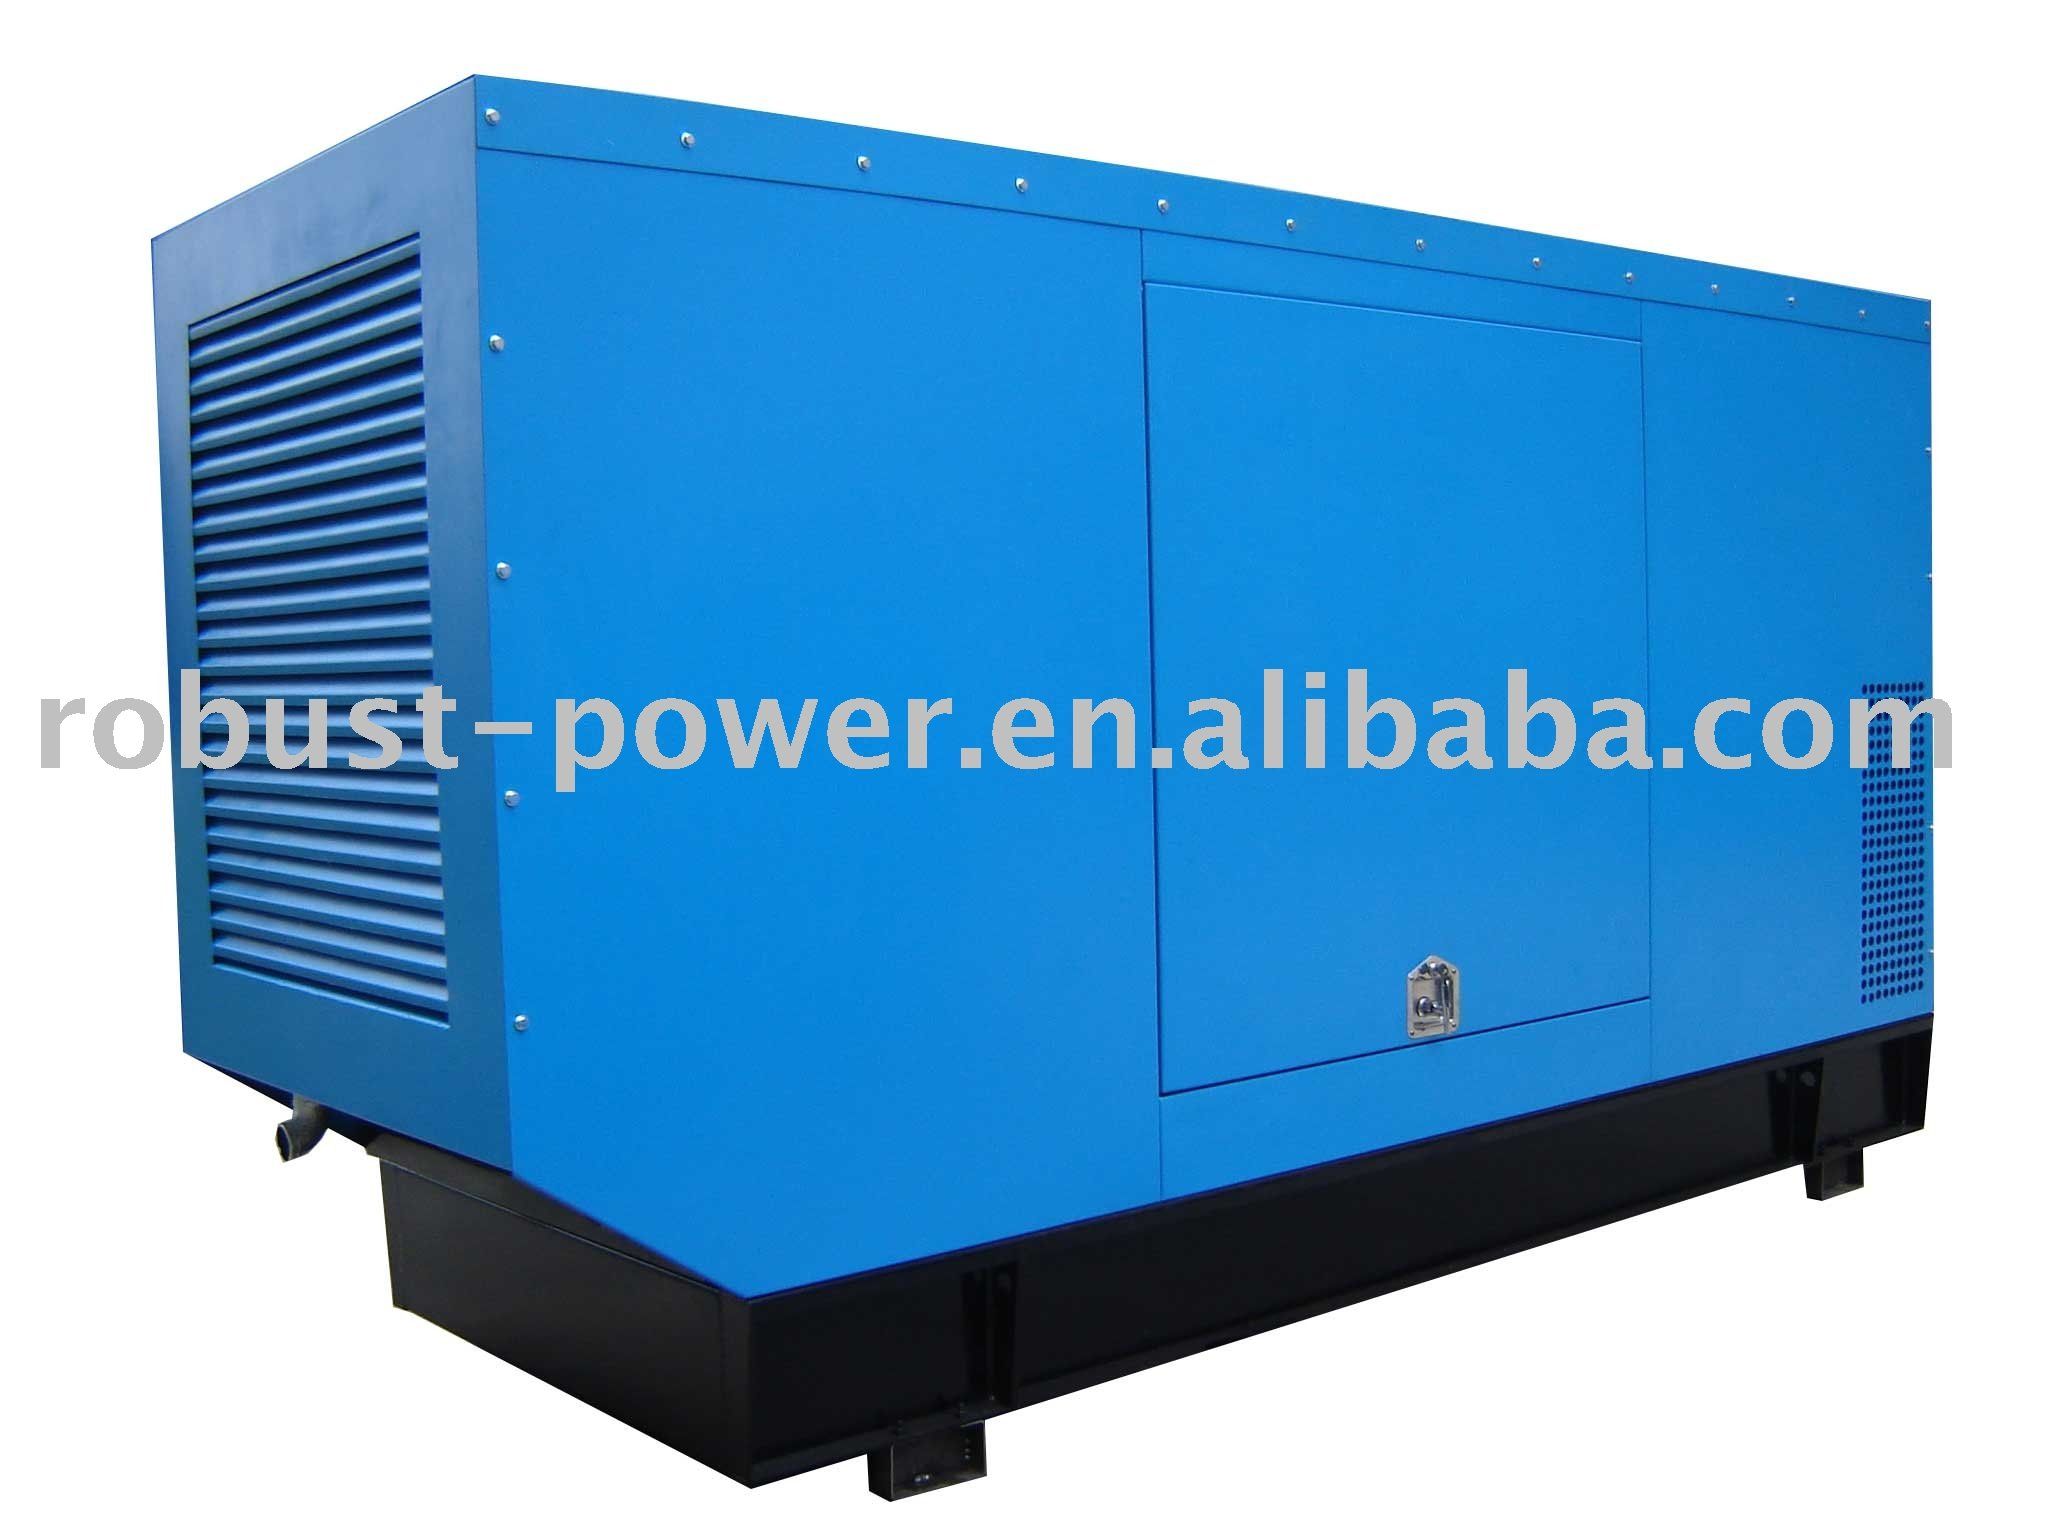 China Lister Petter Diesel Generators China Lister Petter Diesel